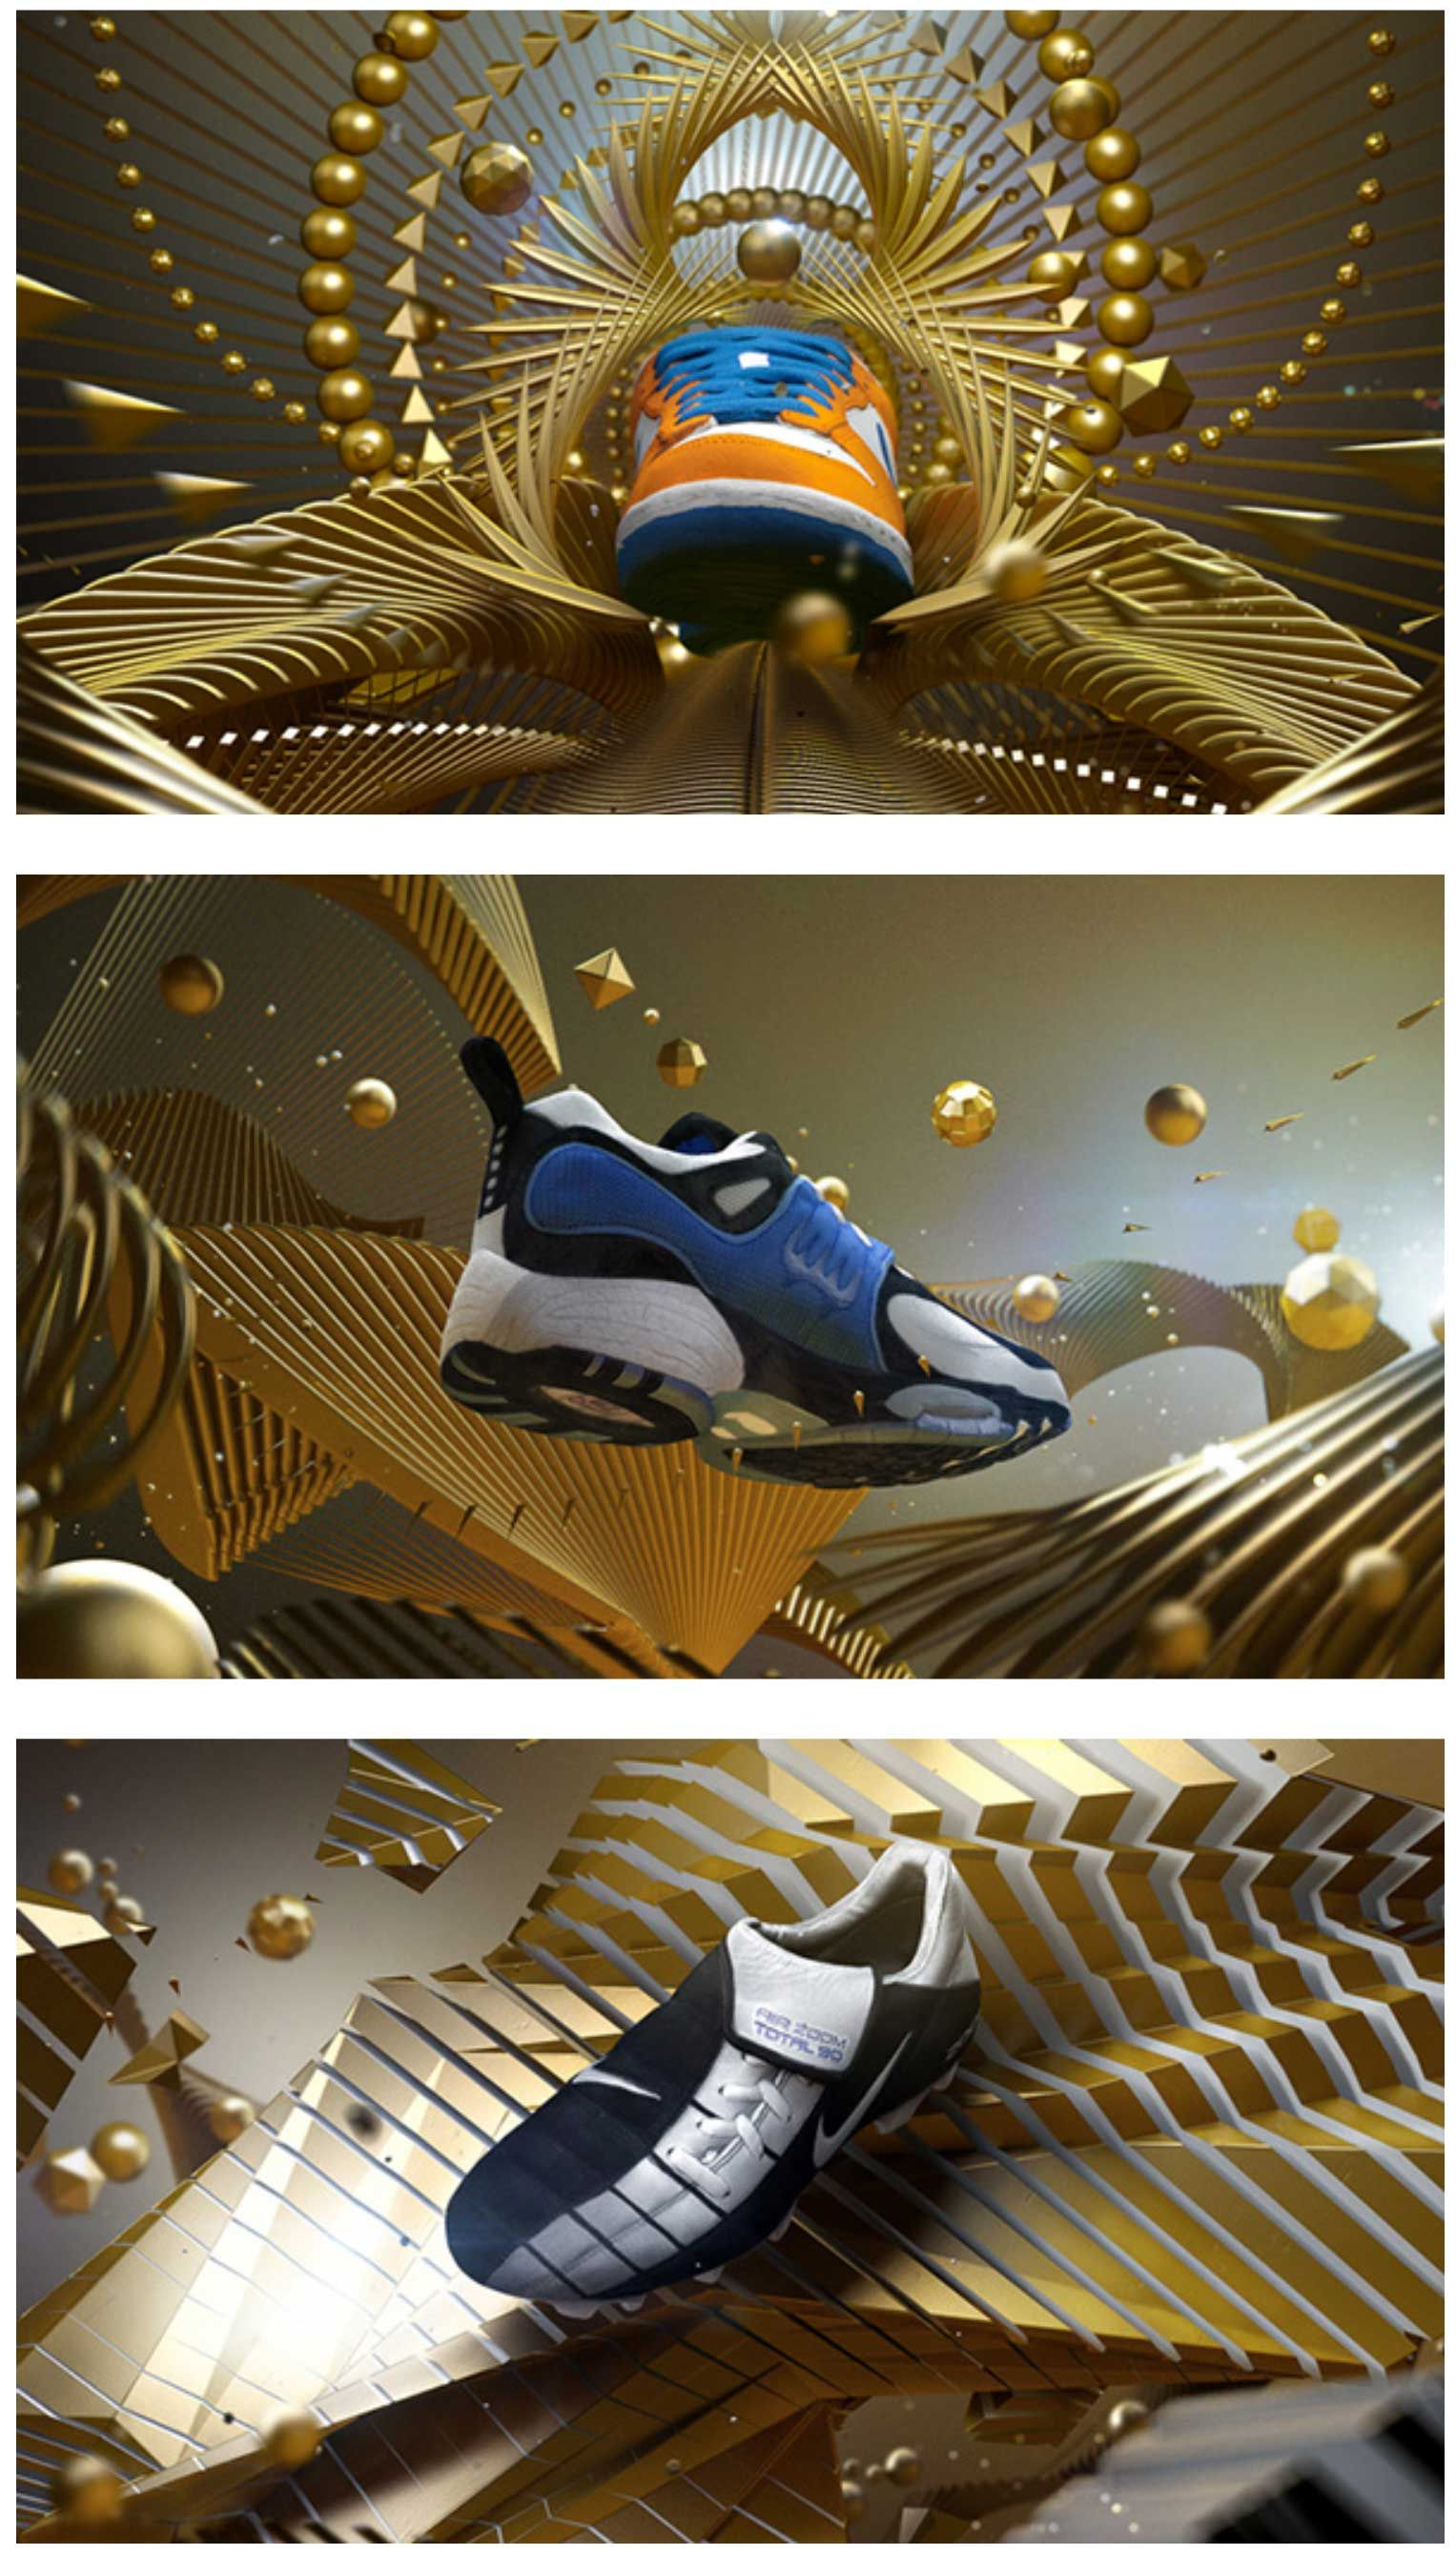 "Nike, Genealogy of innovation ""Golden Years"" Motion"